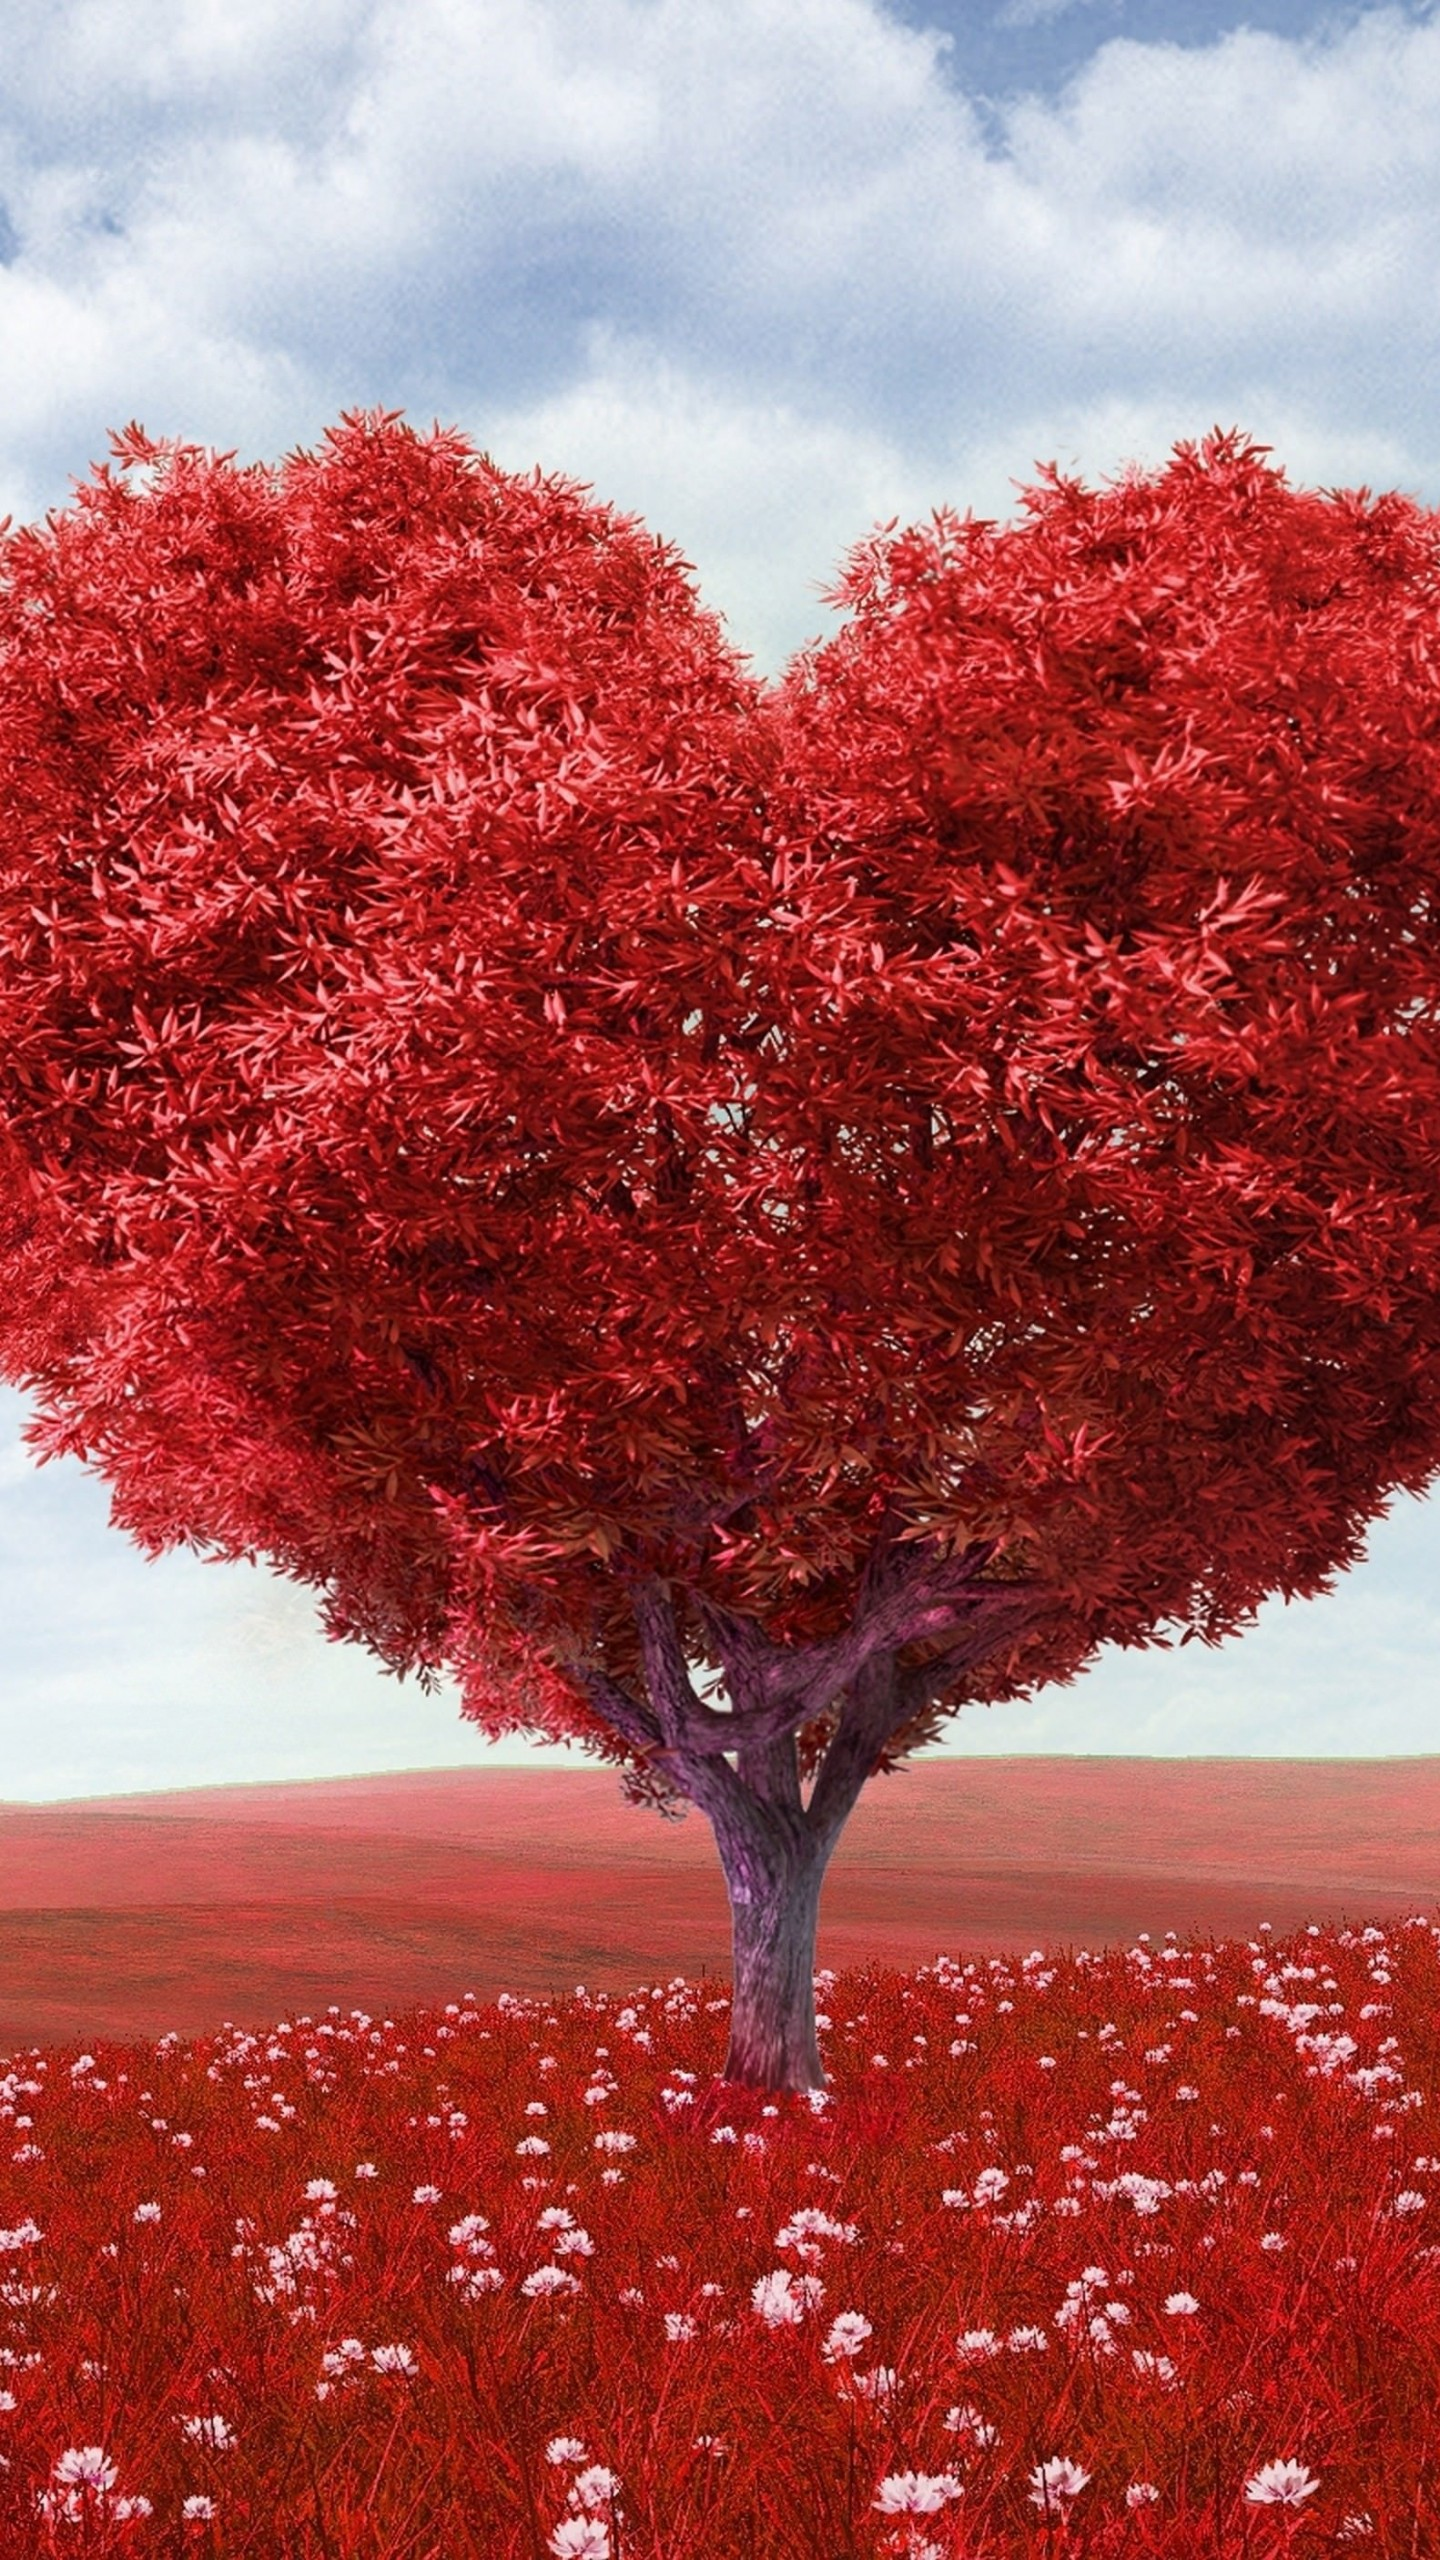 The Tree Of Love Wallpaper for SAMSUNG Galaxy S6